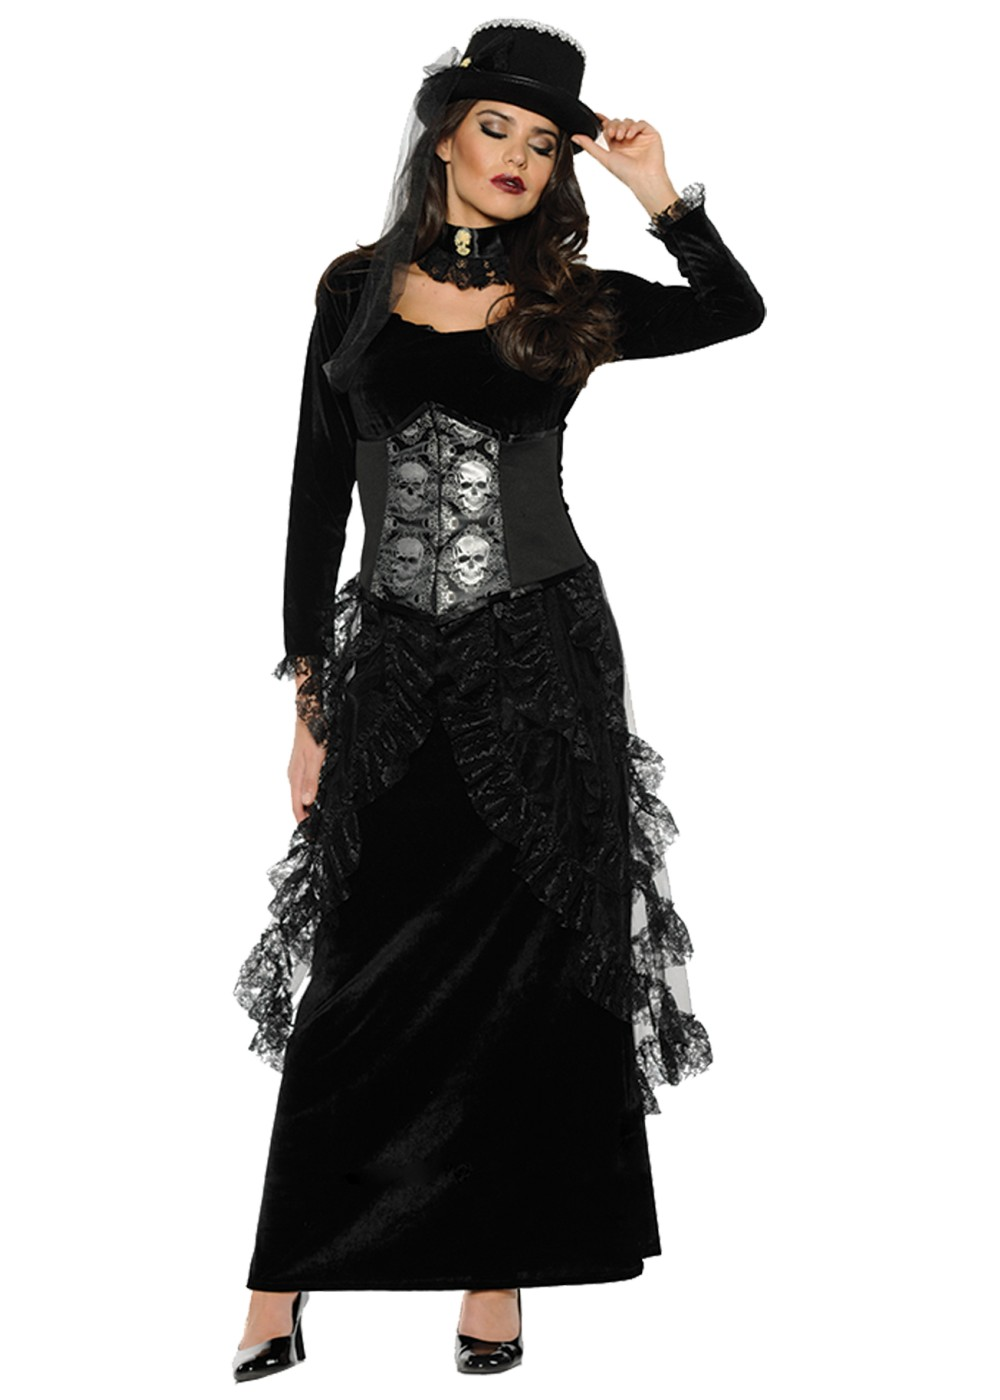 Dark Mistress Women Costume - Holiday Costumes